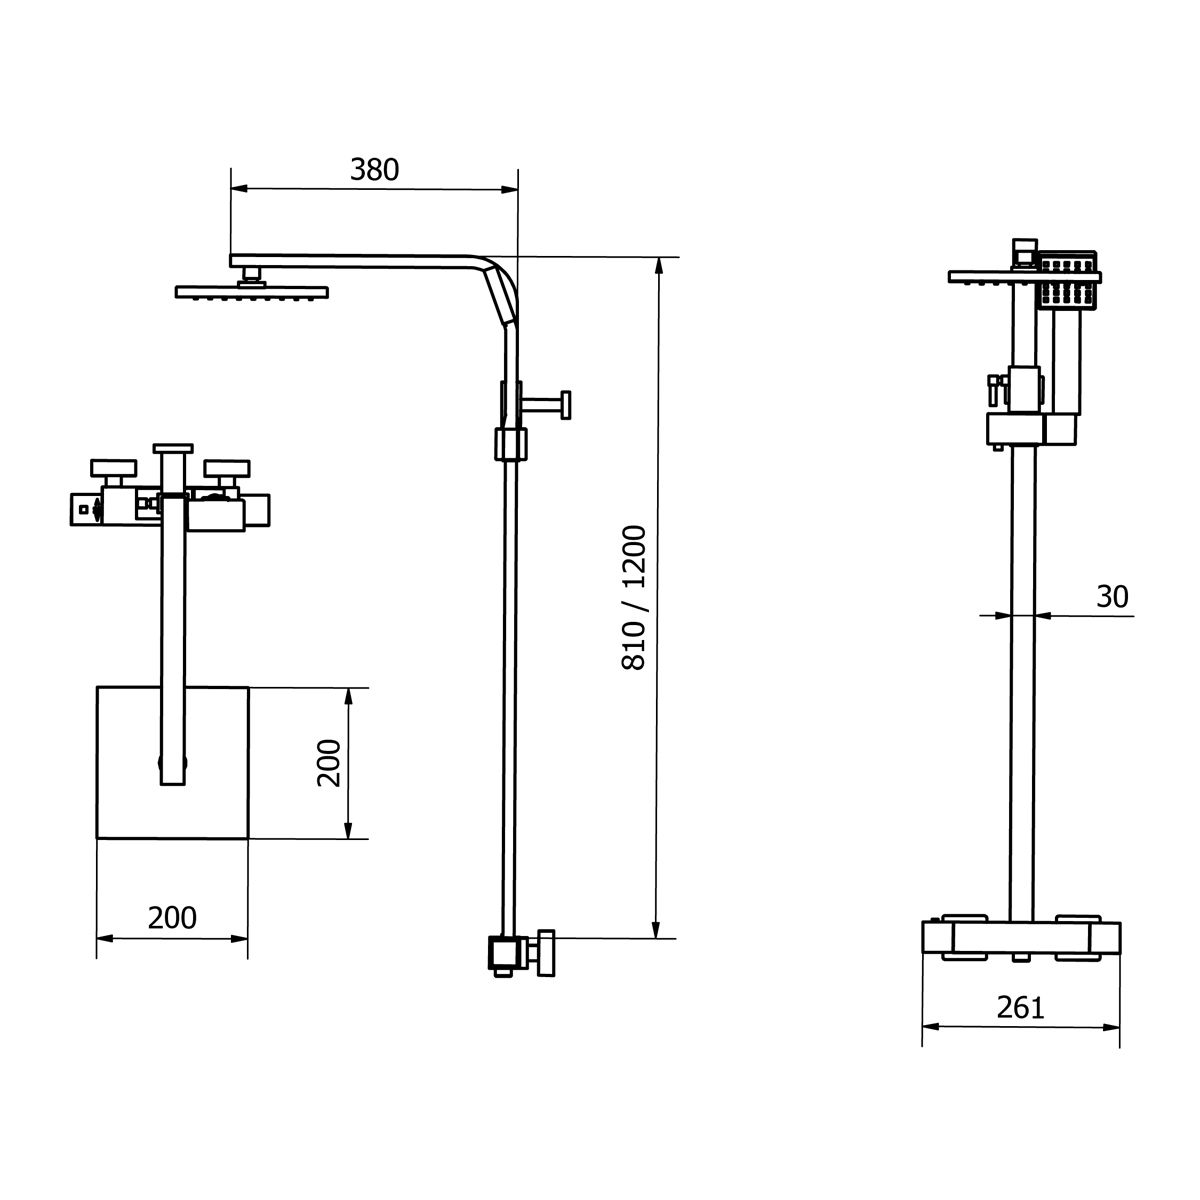 Cassellie Elite Thermostatic Mixer Shower Kit Drawing